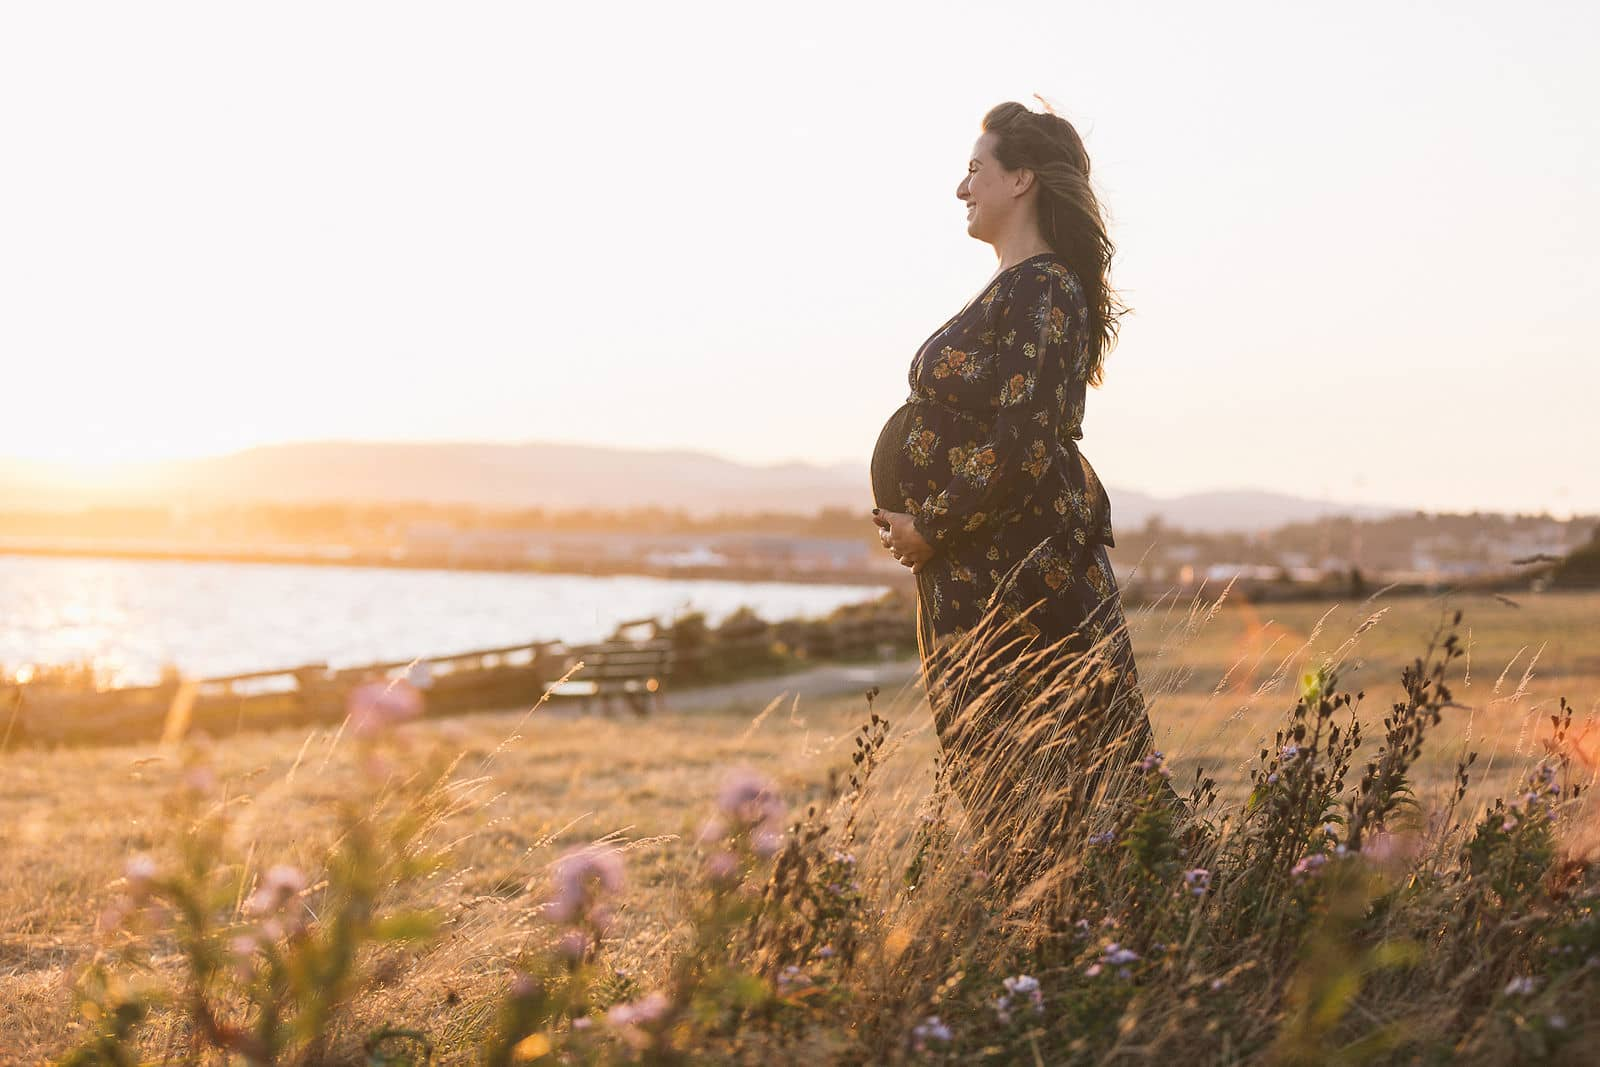 An expecting mother basks in golden hour at Dallas Road in Victoria, BC. Photo by Marlboro Wang.